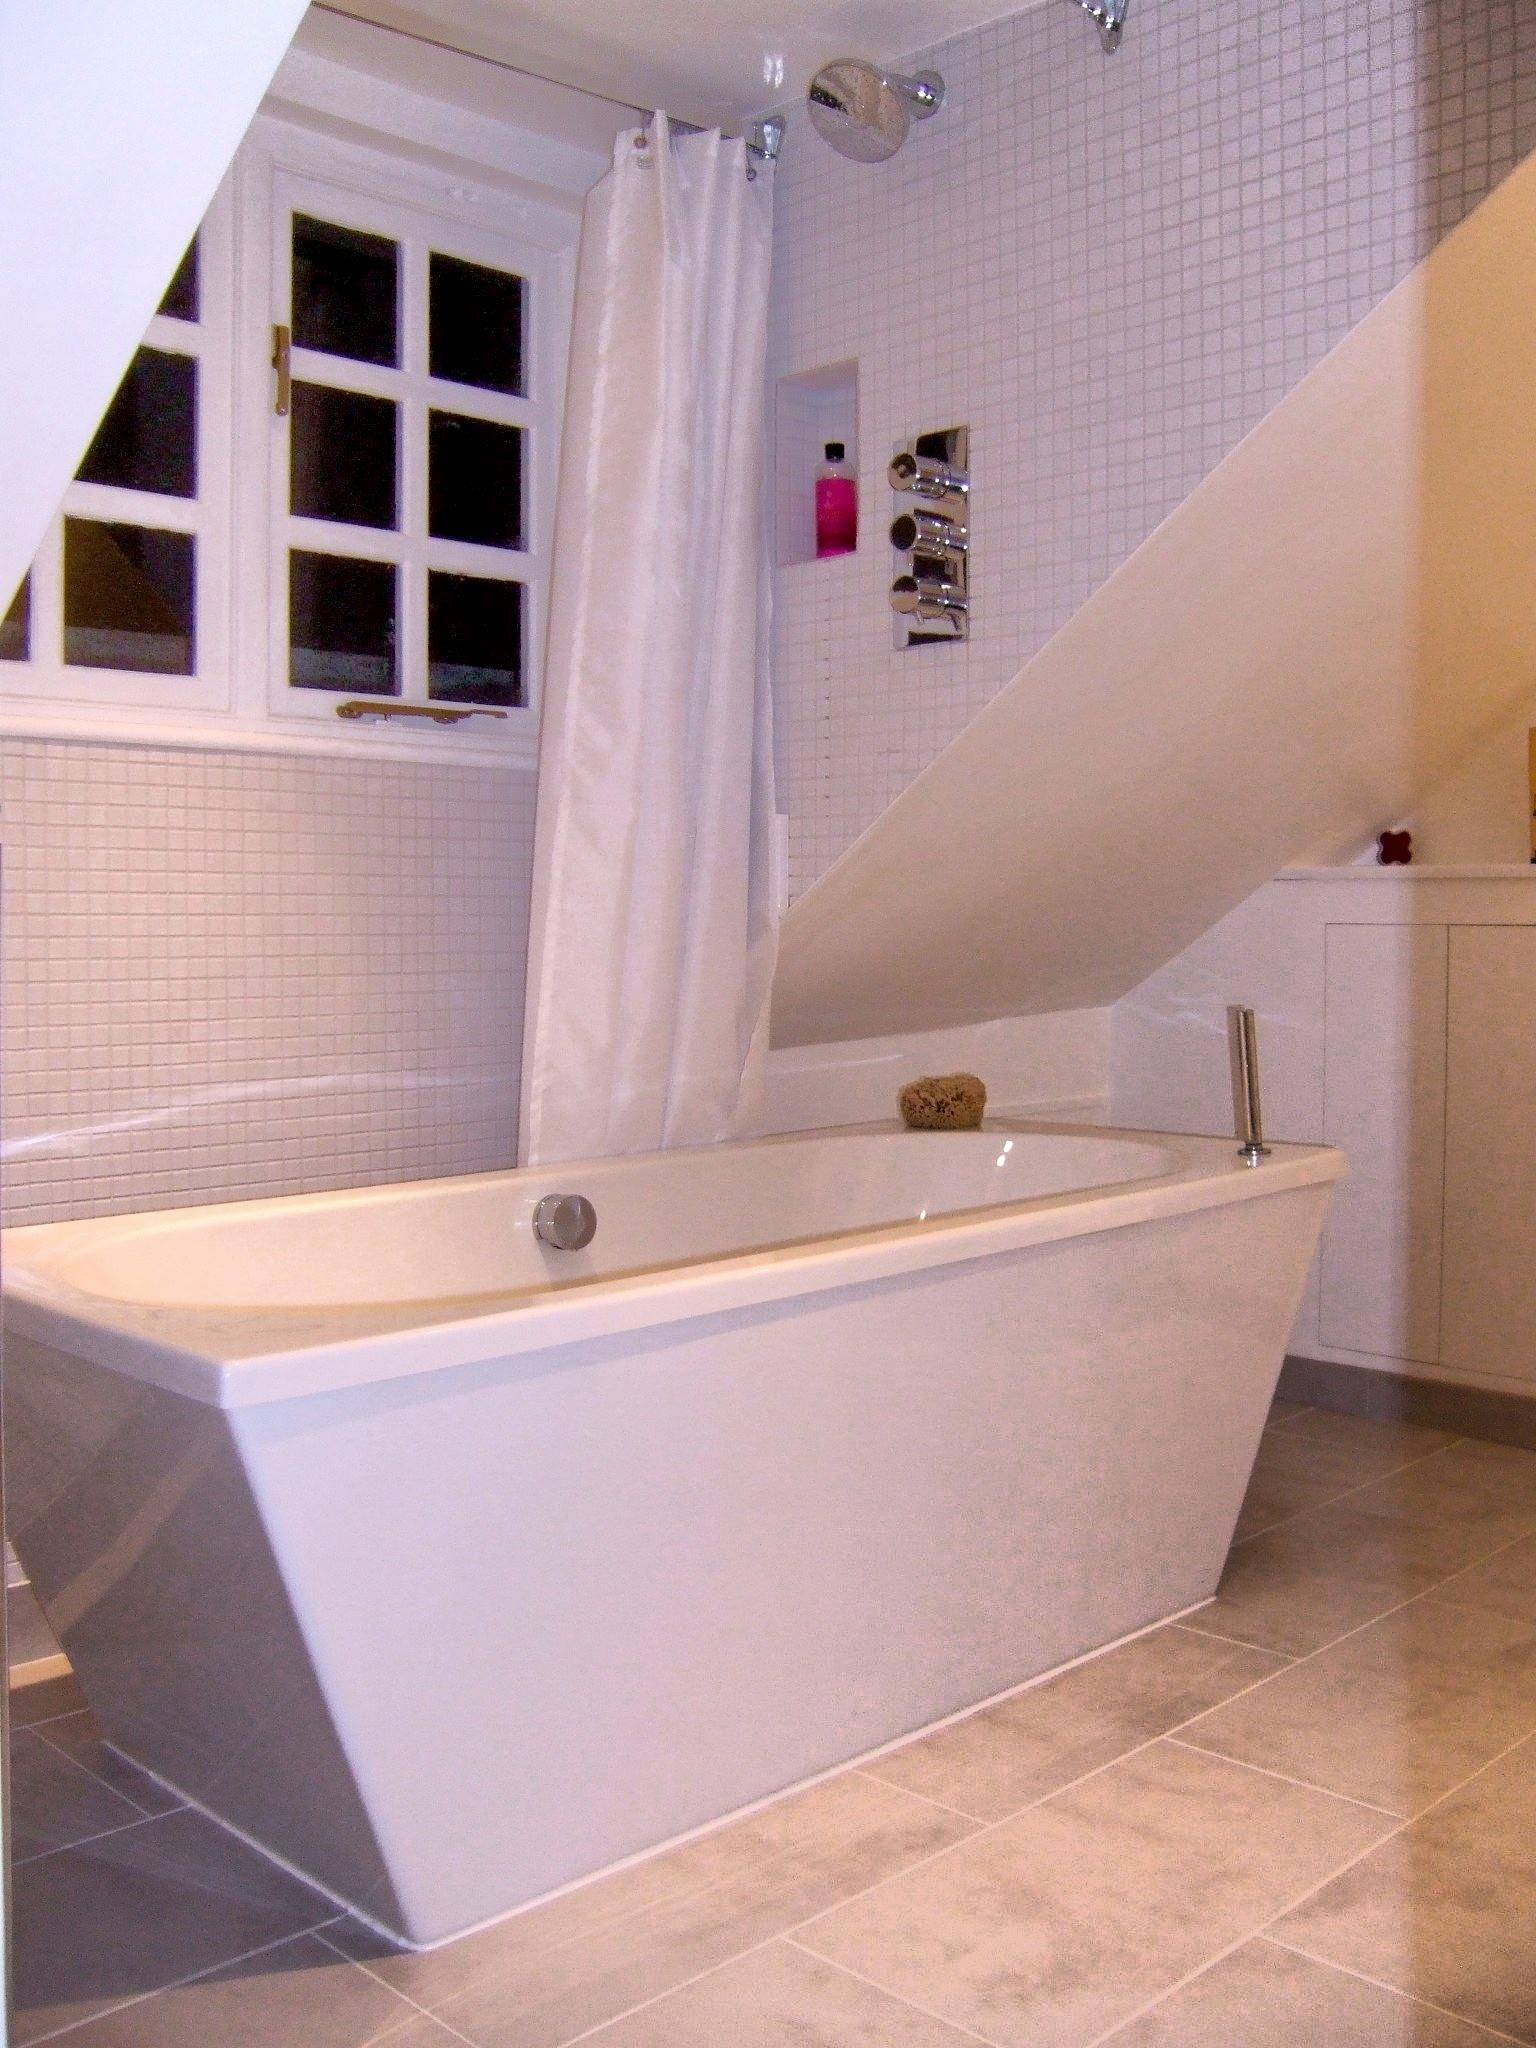 free standing tub and shower. Clearwater Baths  Interior Freestanding For Sale Soaking Tub With Willows